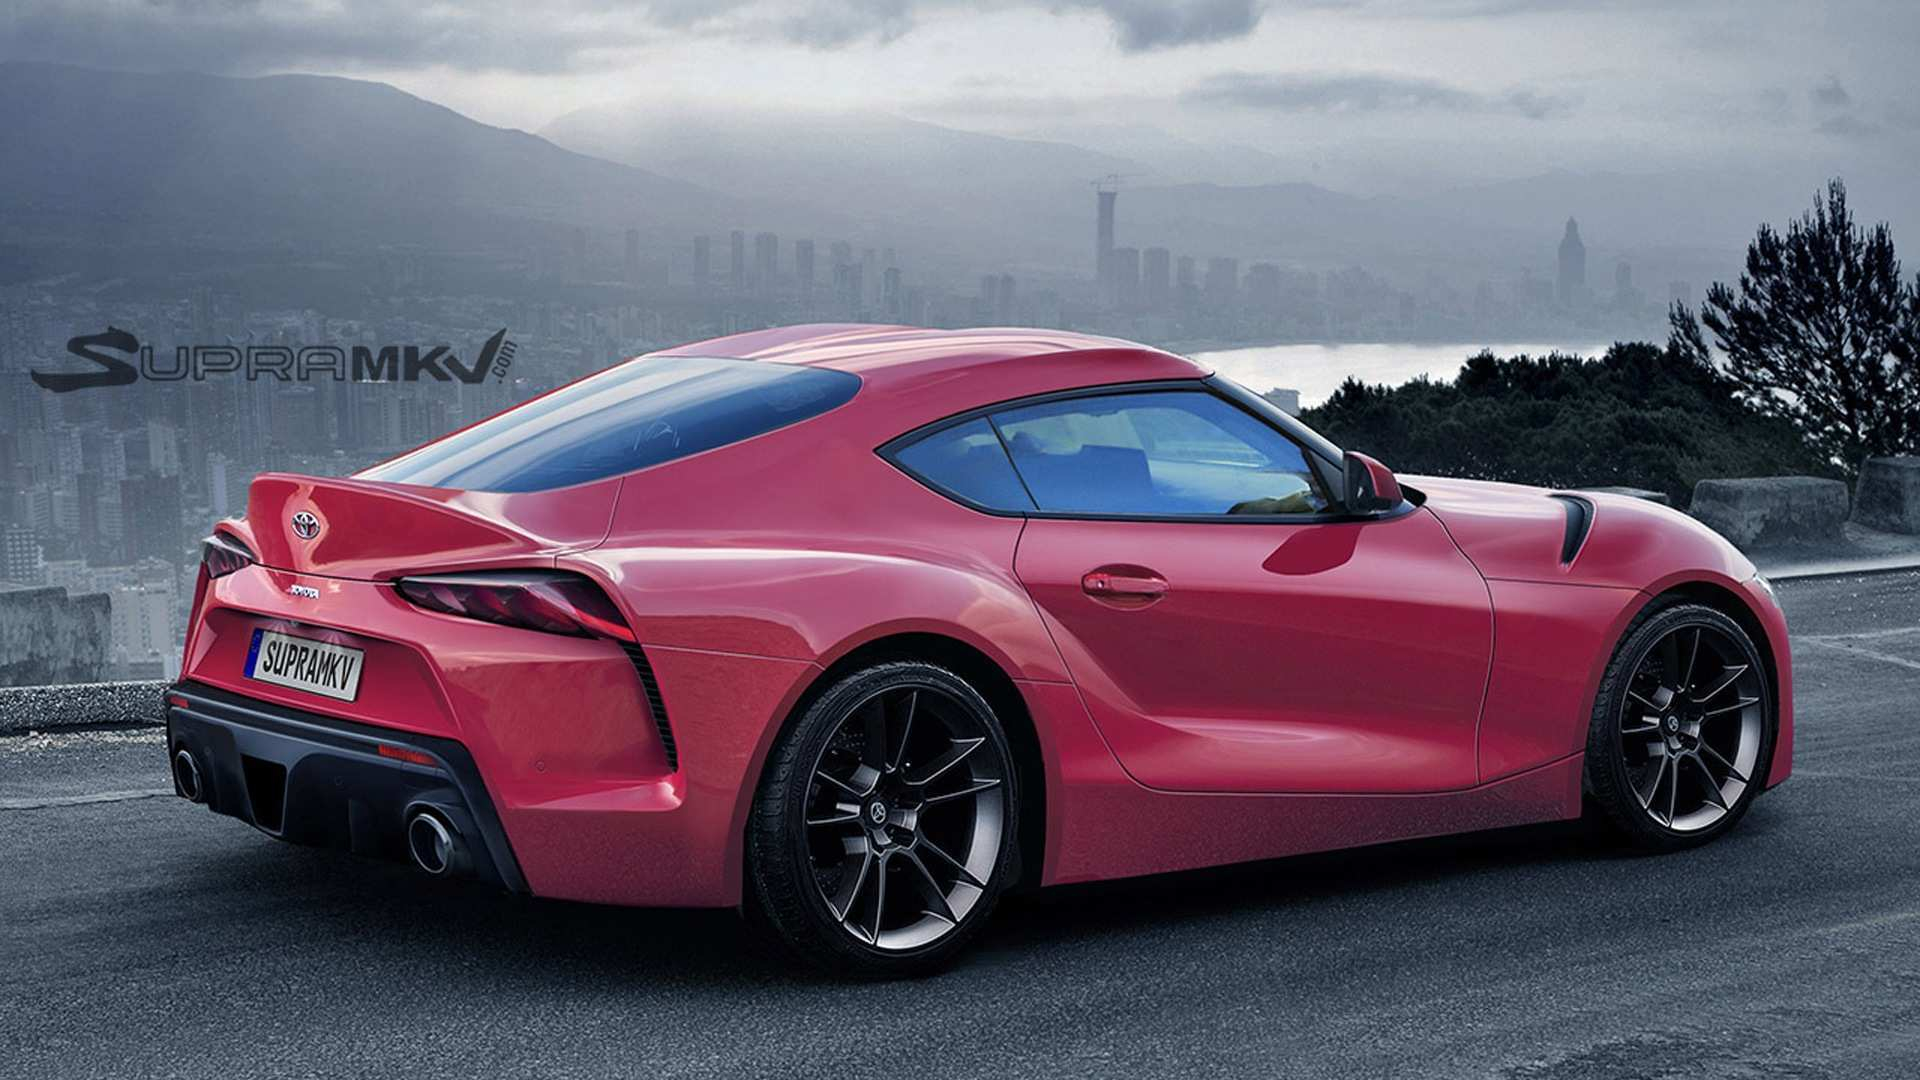 36 Great 2019 Toyota Supra Manual Review with 2019 Toyota Supra Manual